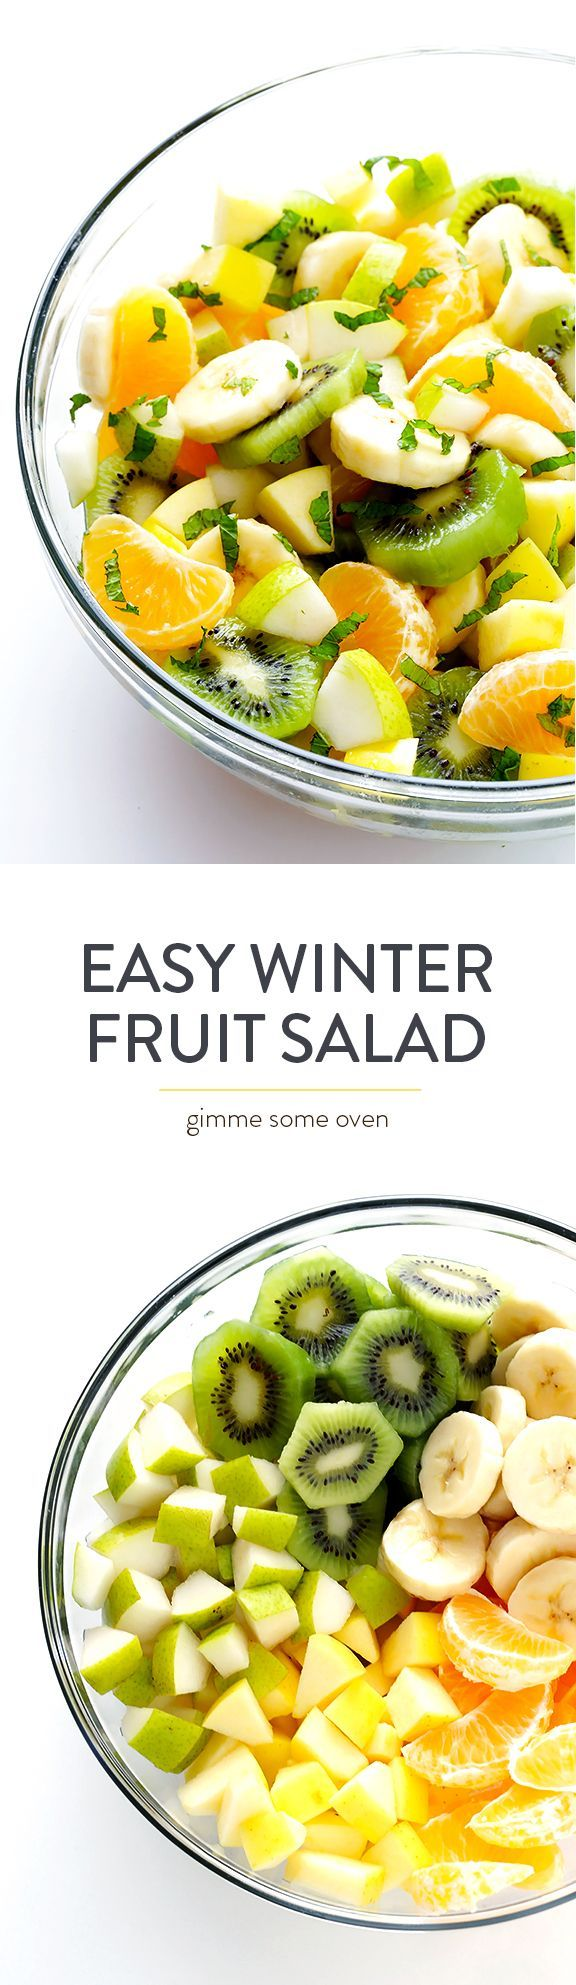 healthy recipes for juicing fruits and vegetables easy fruit salad recipe